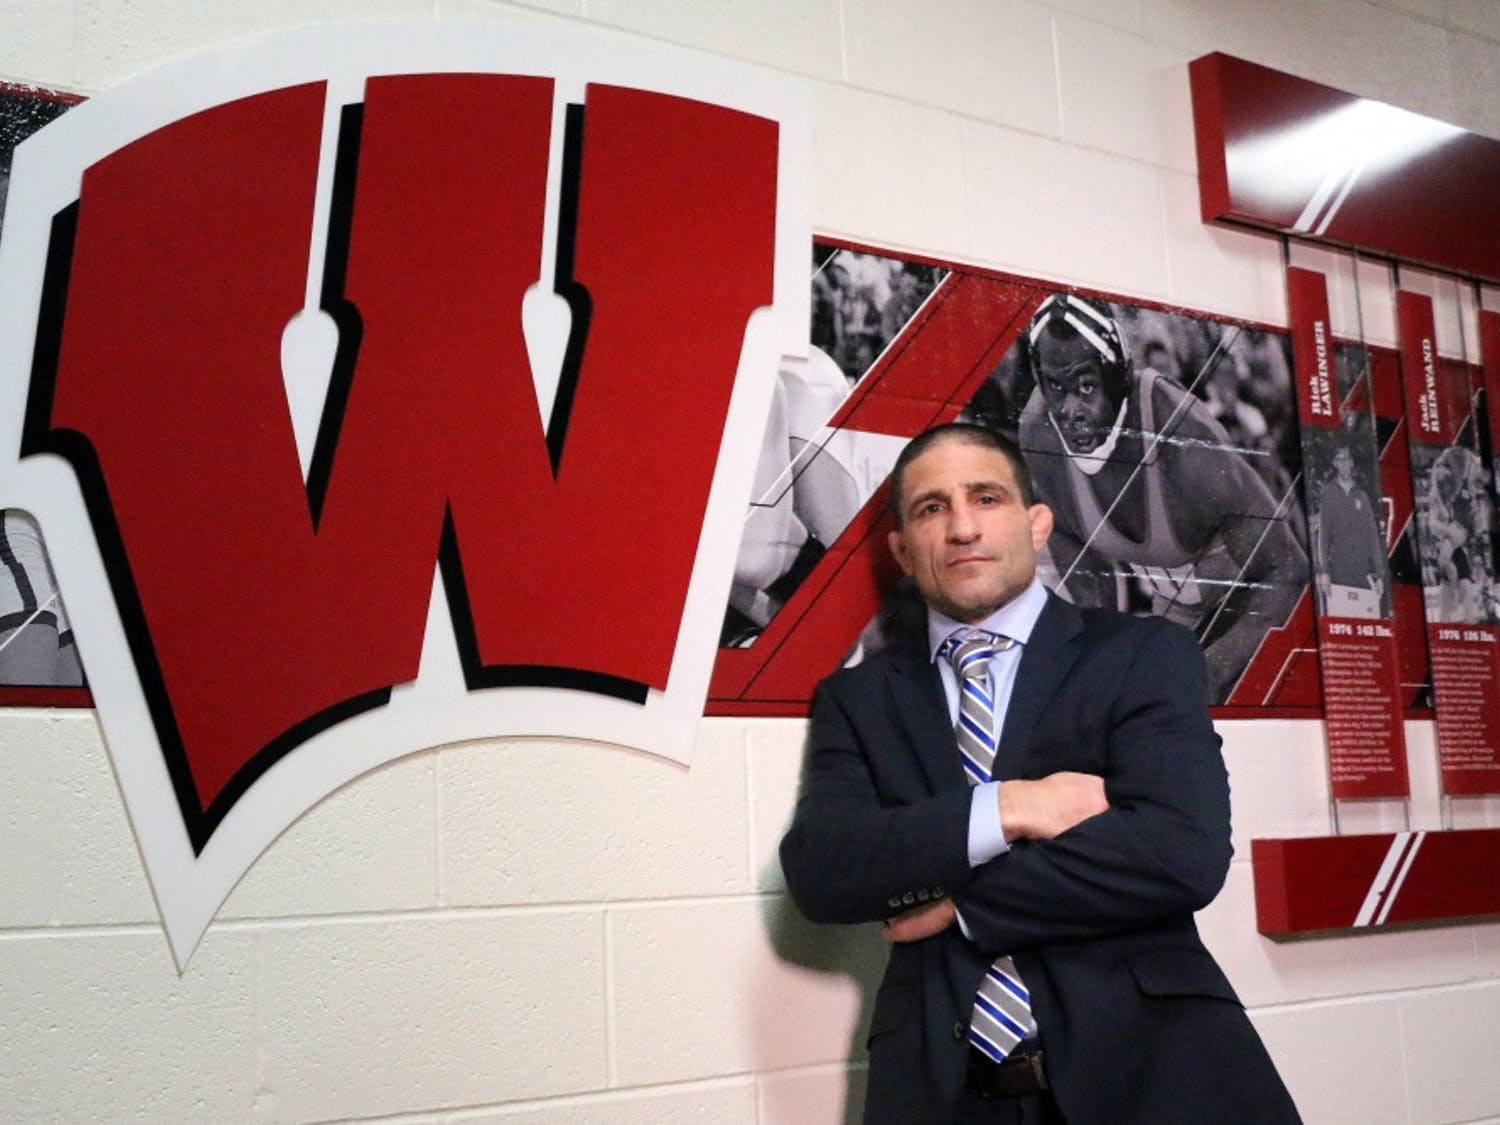 Chris Bono, the 2017 Big 12 Coach of the Year, is hoping to bring Wisconsin its first conference title in school history.